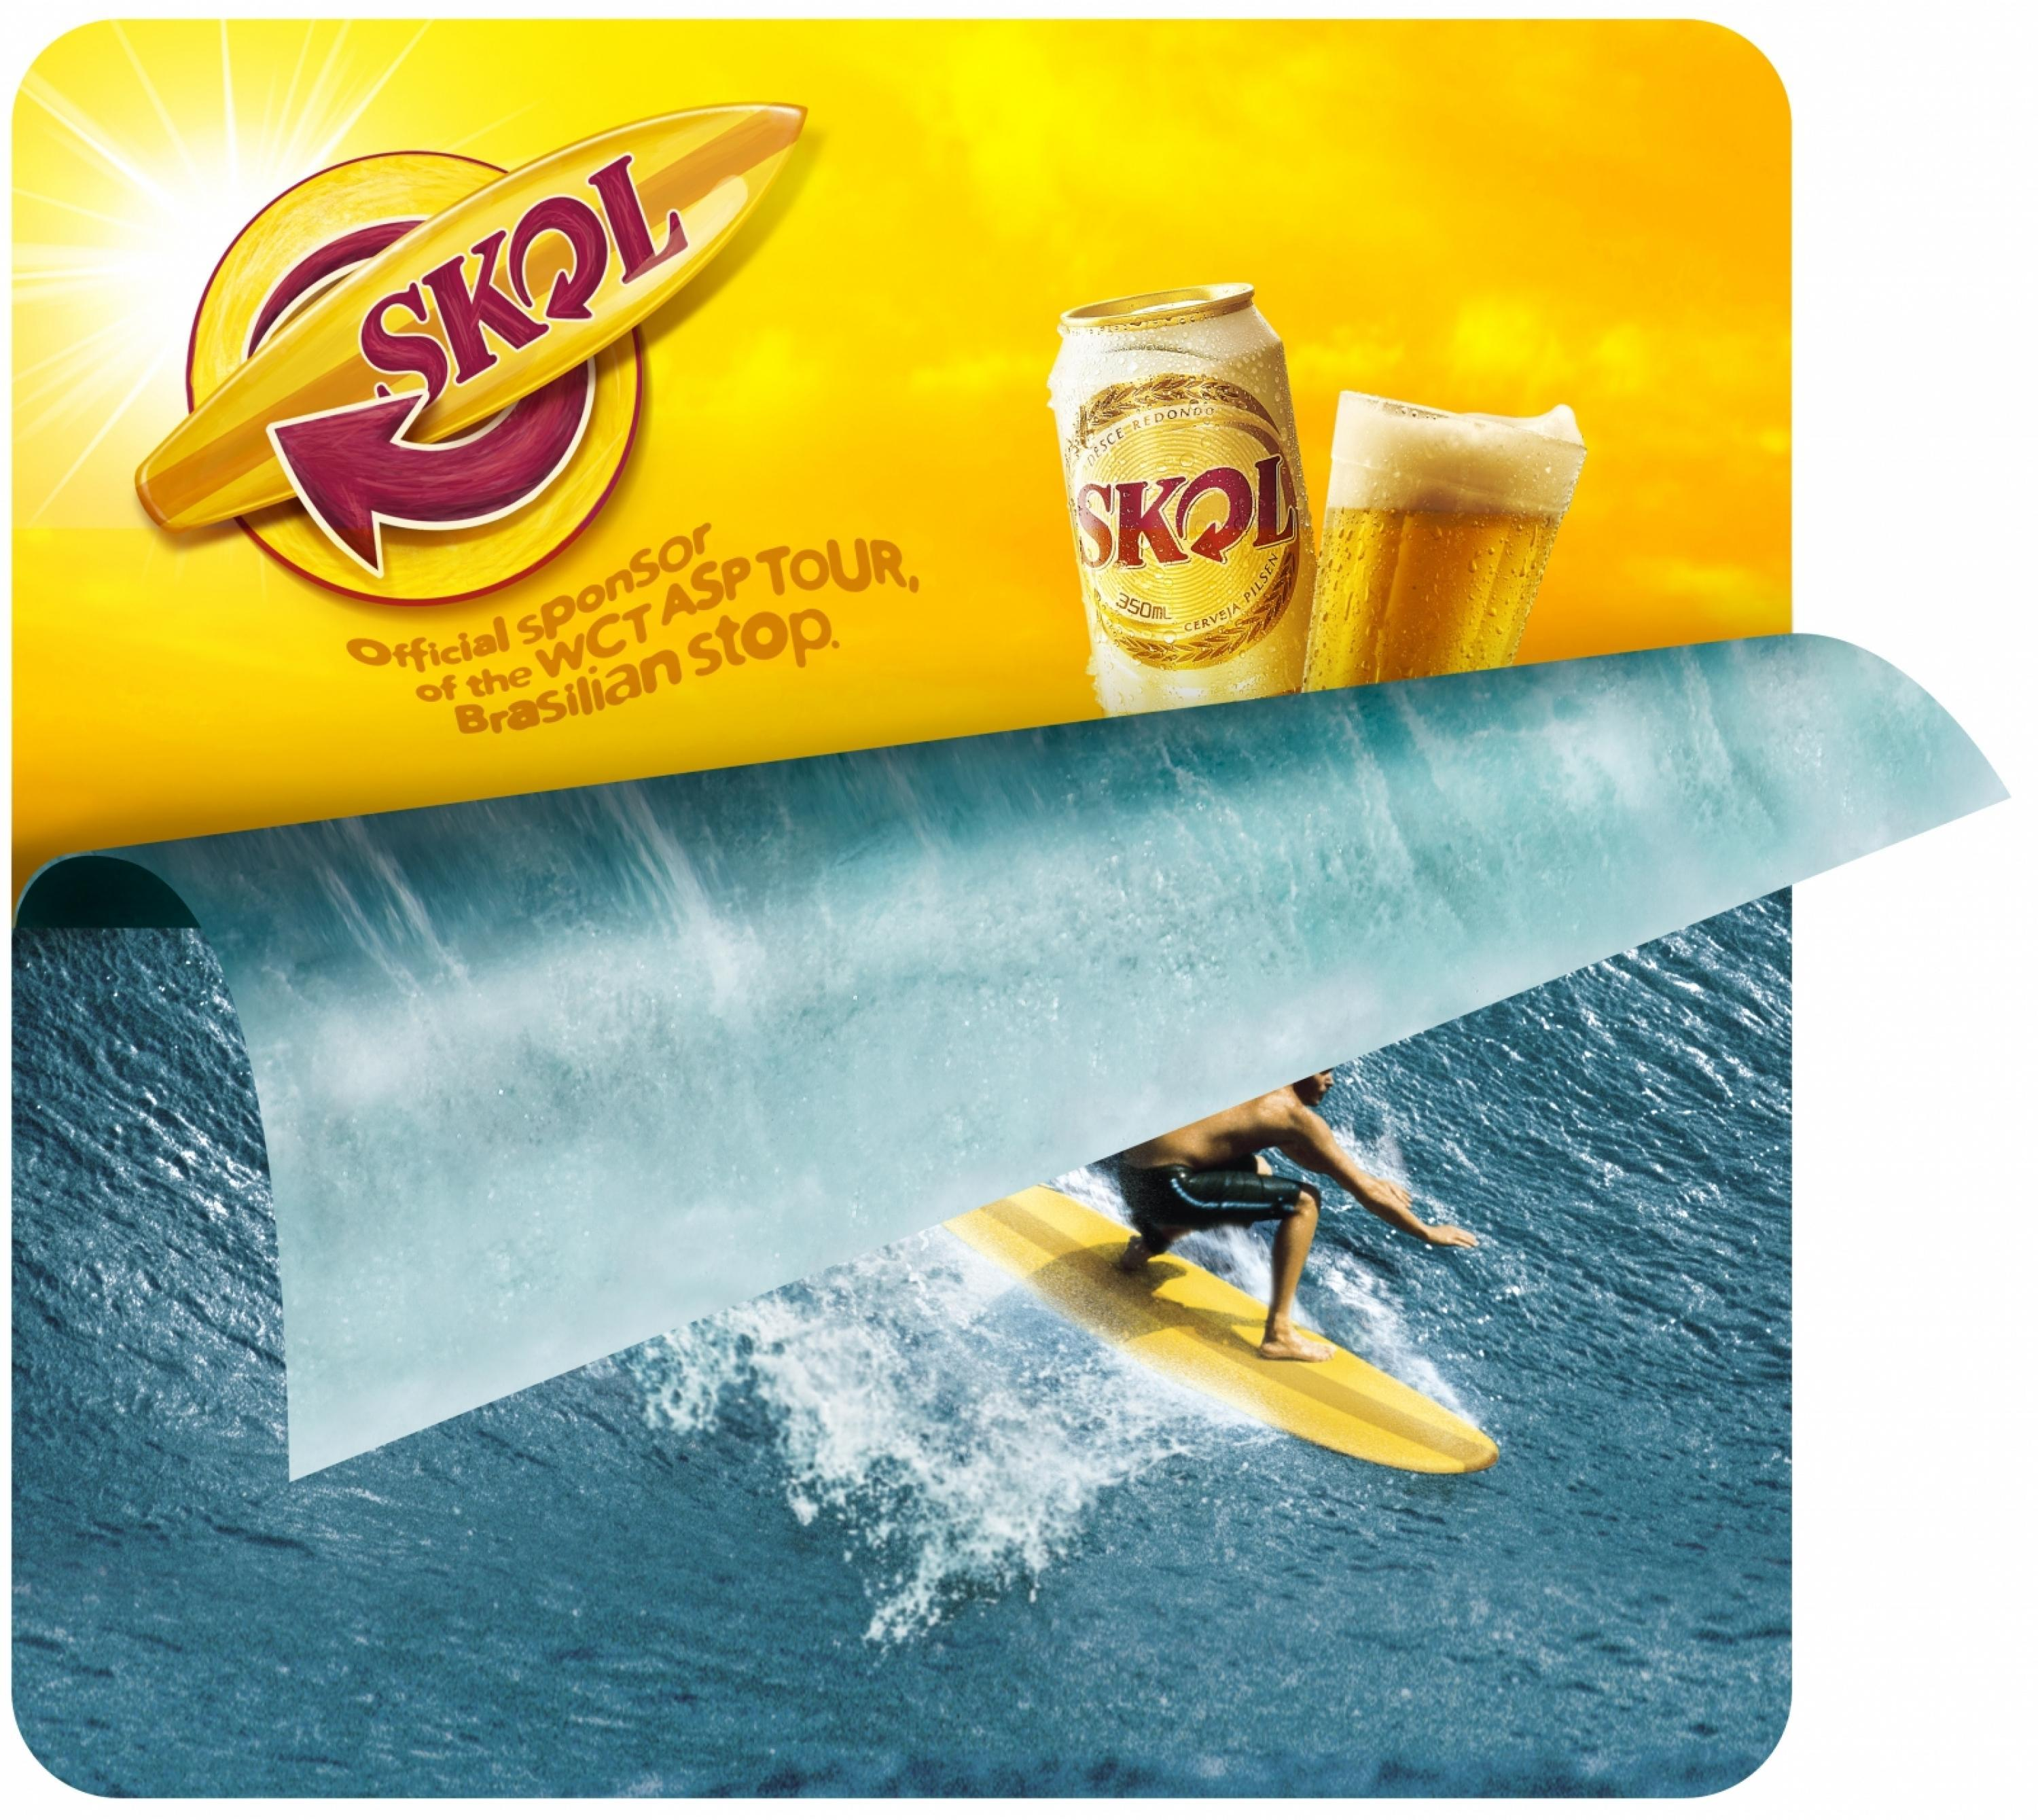 Ambev Skol Beer Skol Surf Outdoor together with Nazilli in addition Theme Park Transfers moreover Monza additionally Joensuu. on outdoor surf